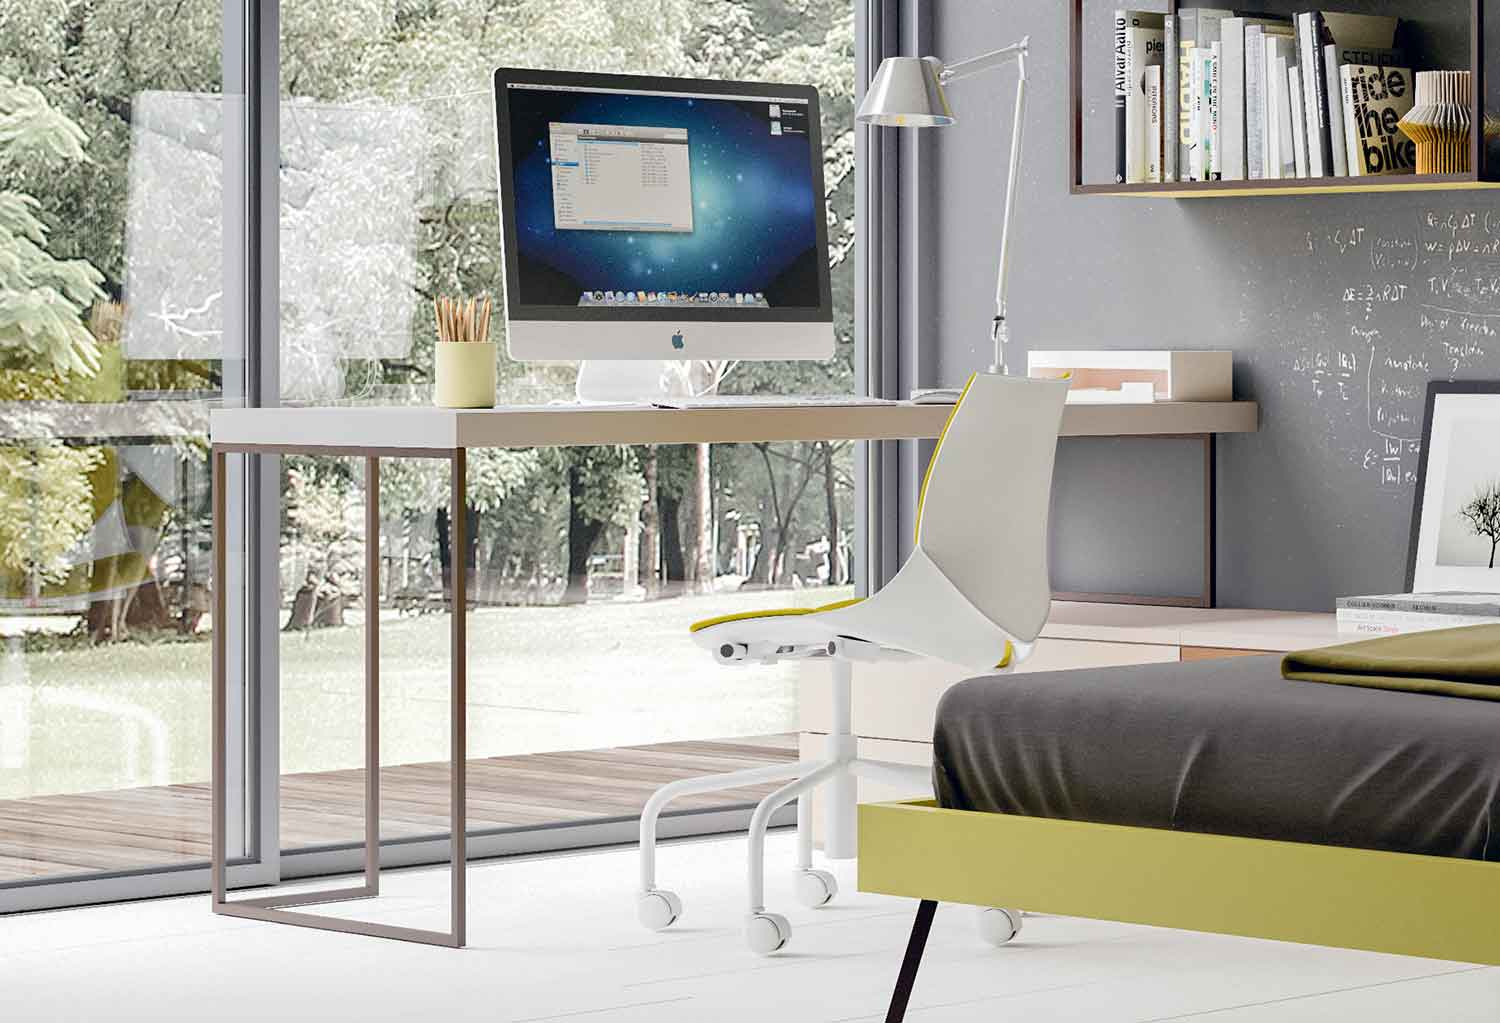 The desk is a cool addition to kids or teens' bedrooms